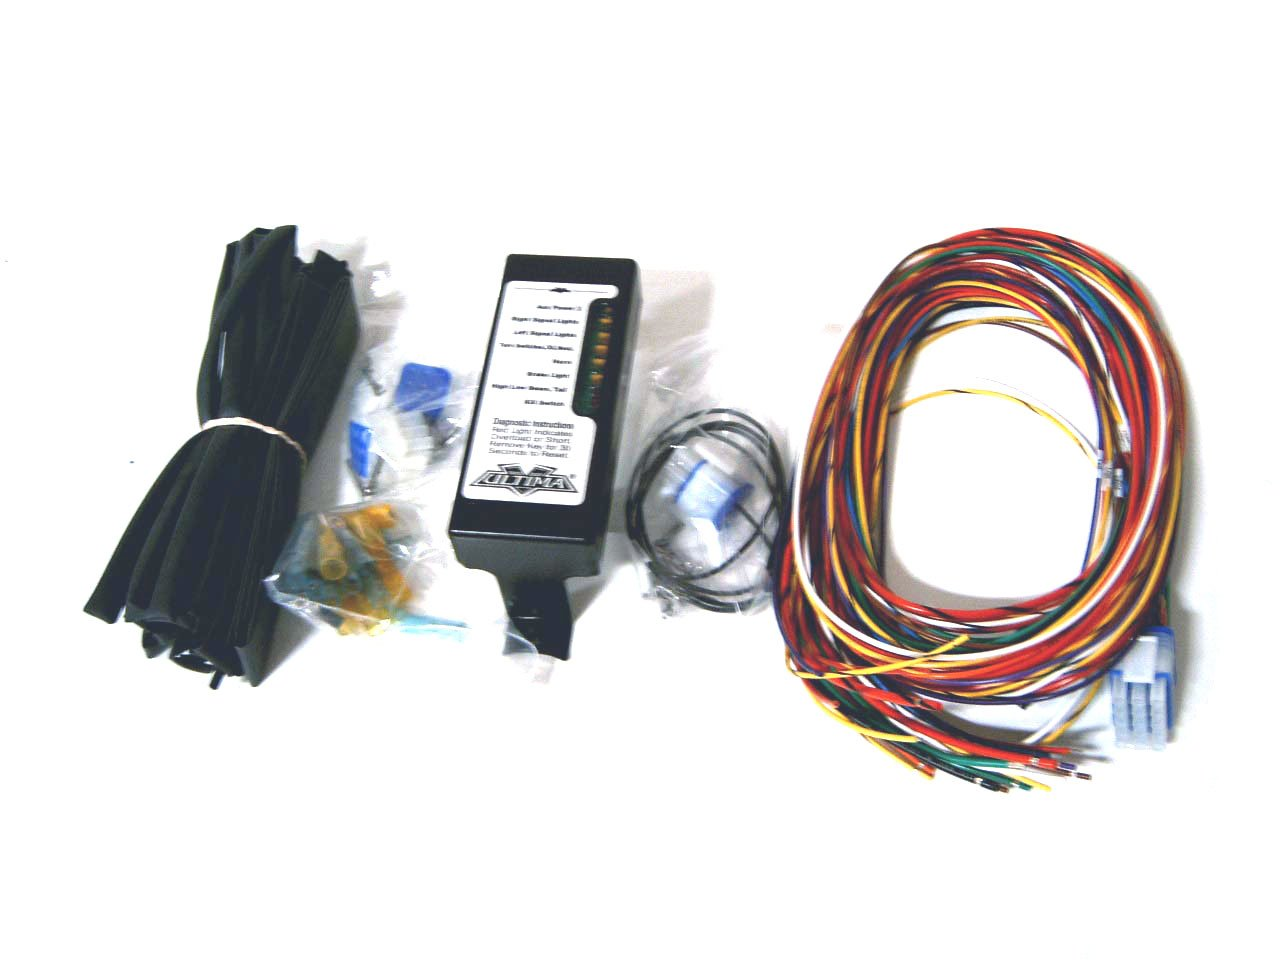 61DV2Bq5%2BHL._SL1280_ amazon com ultima complete wiring harness kit for harley davidson universal wiring harness kits at couponss.co